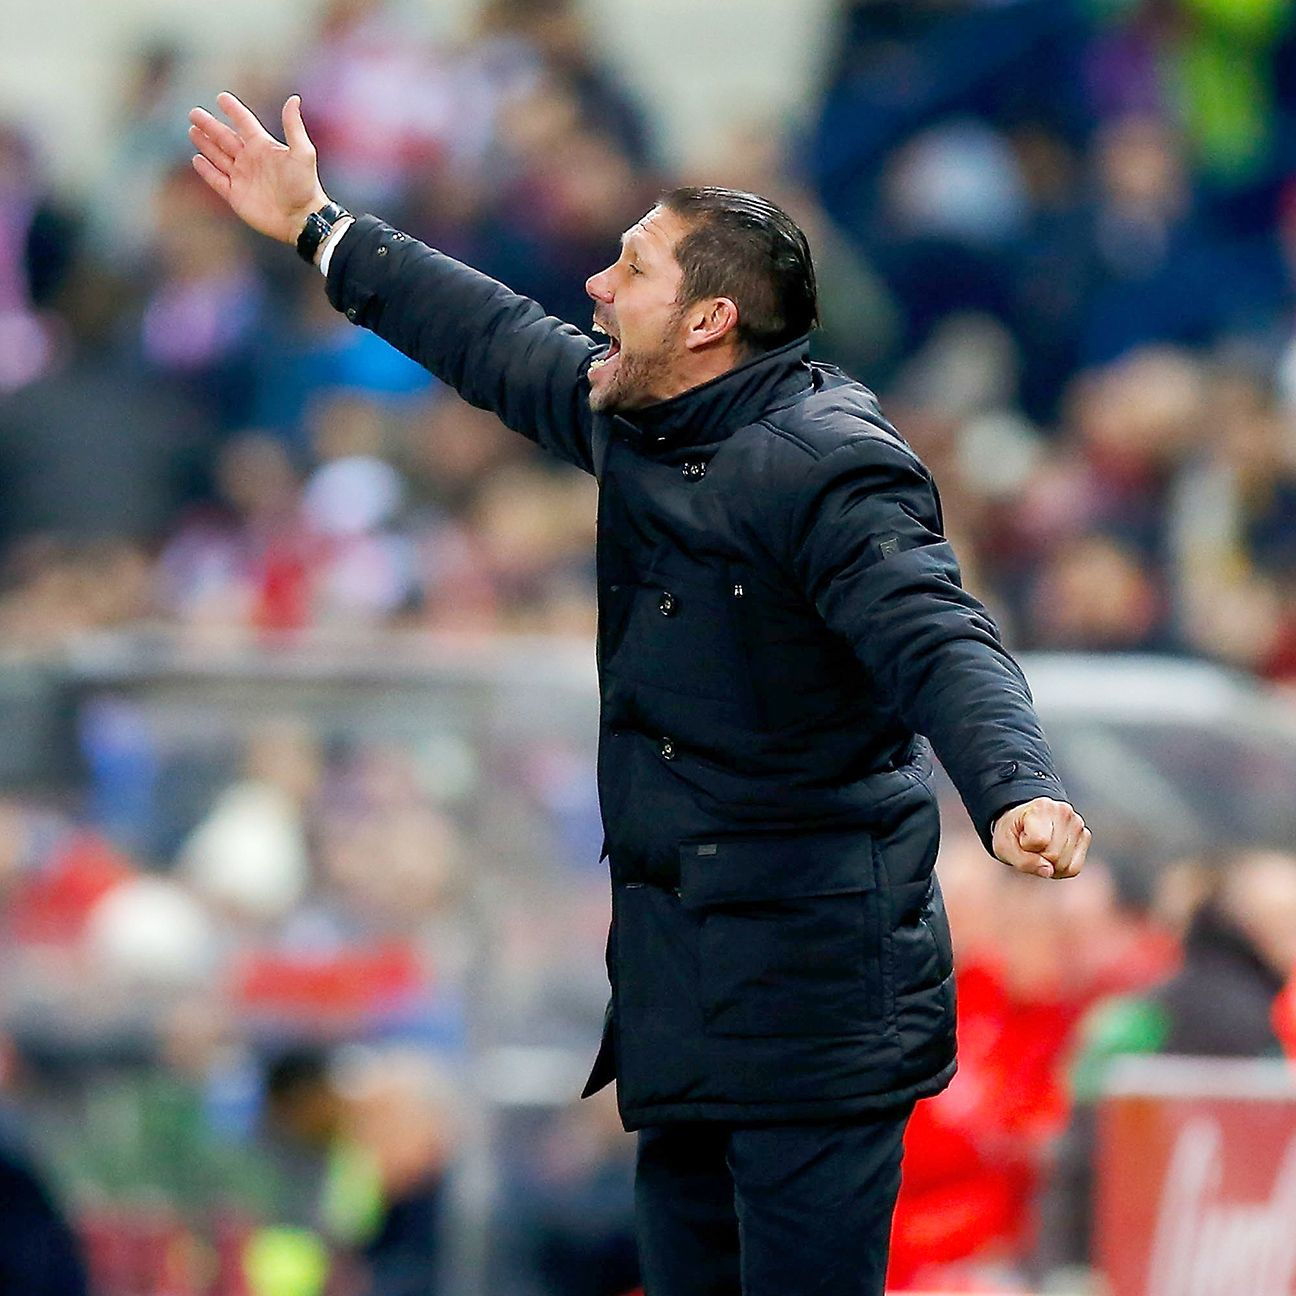 Diego Simeone's defence was unable to contain the explosive Barcelona attack in Wednesday's Copa del Rey quarterfinal return leg at the Vicente Calderon.